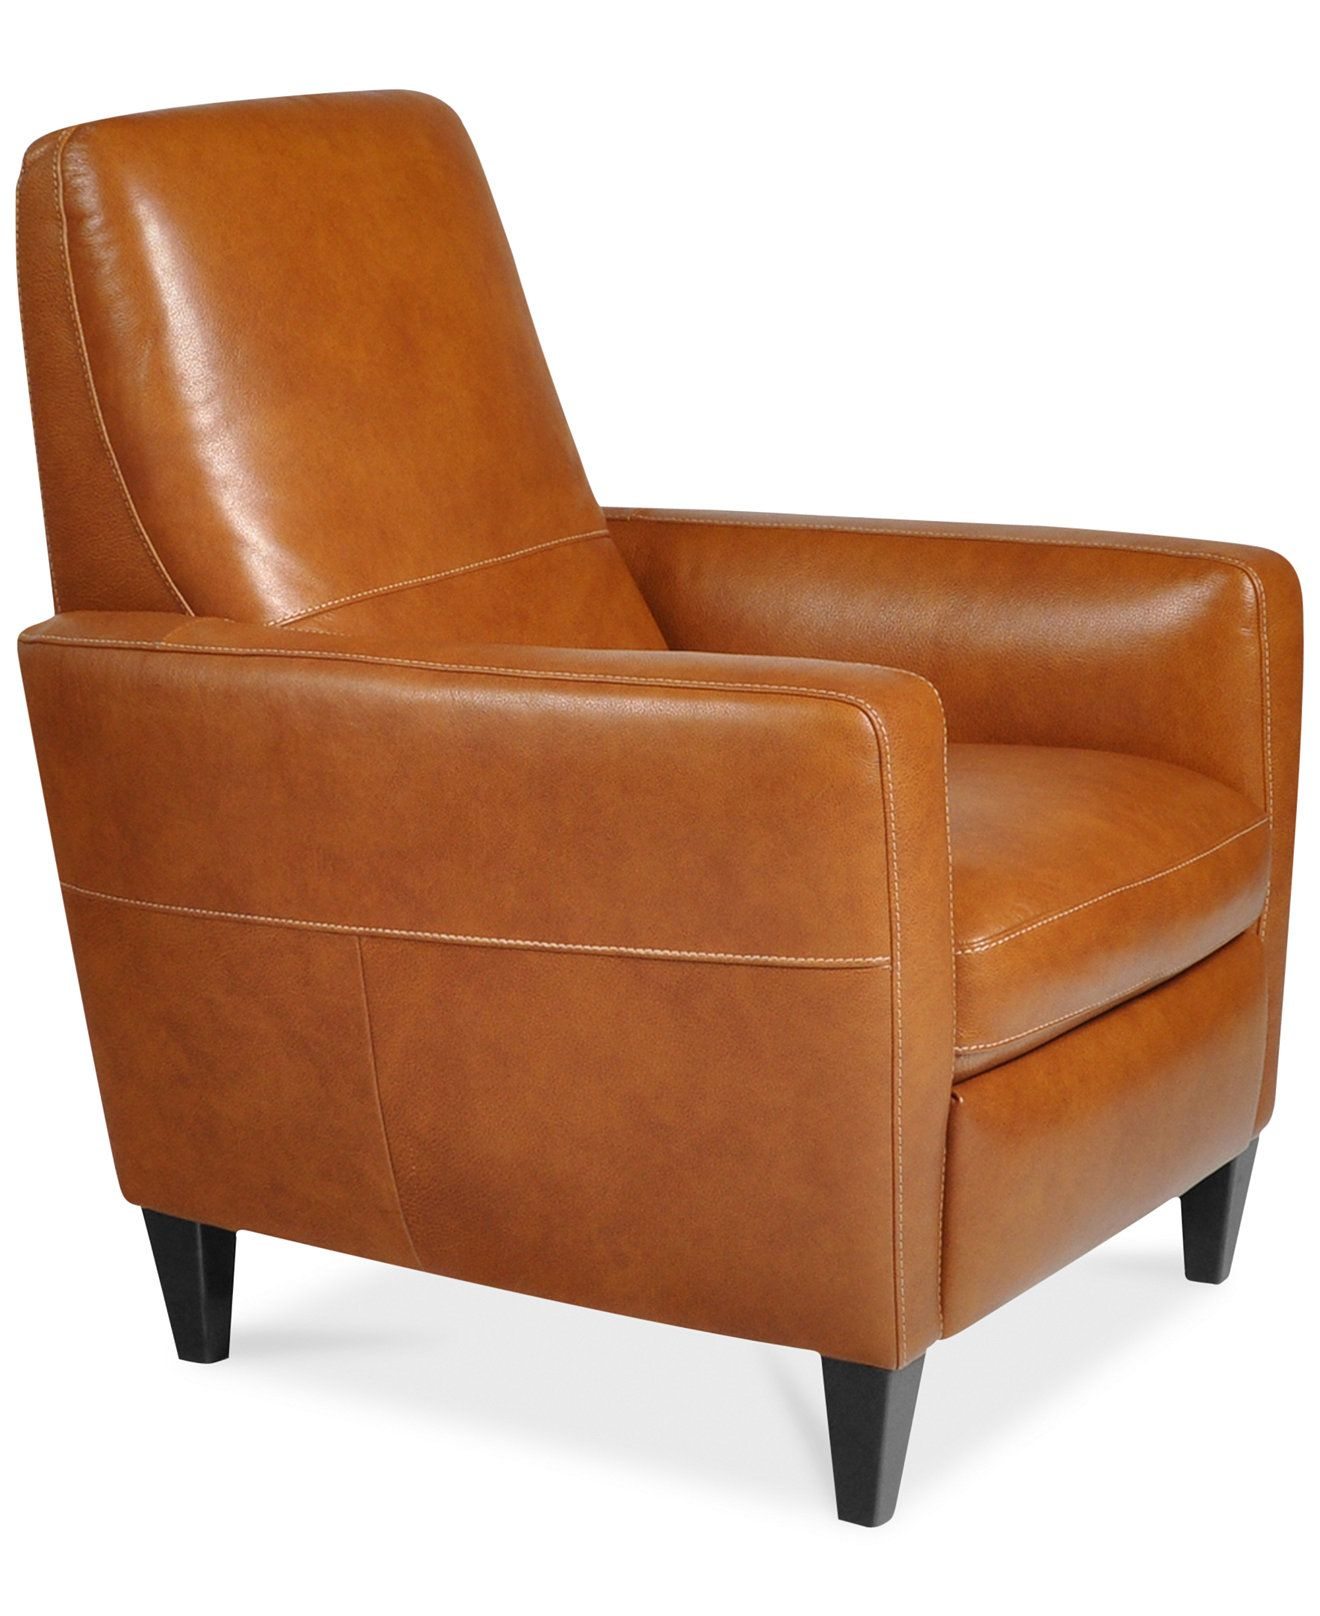 Stupendous Asher Leather Recliner Chair Recliners Furniture Onthecornerstone Fun Painted Chair Ideas Images Onthecornerstoneorg